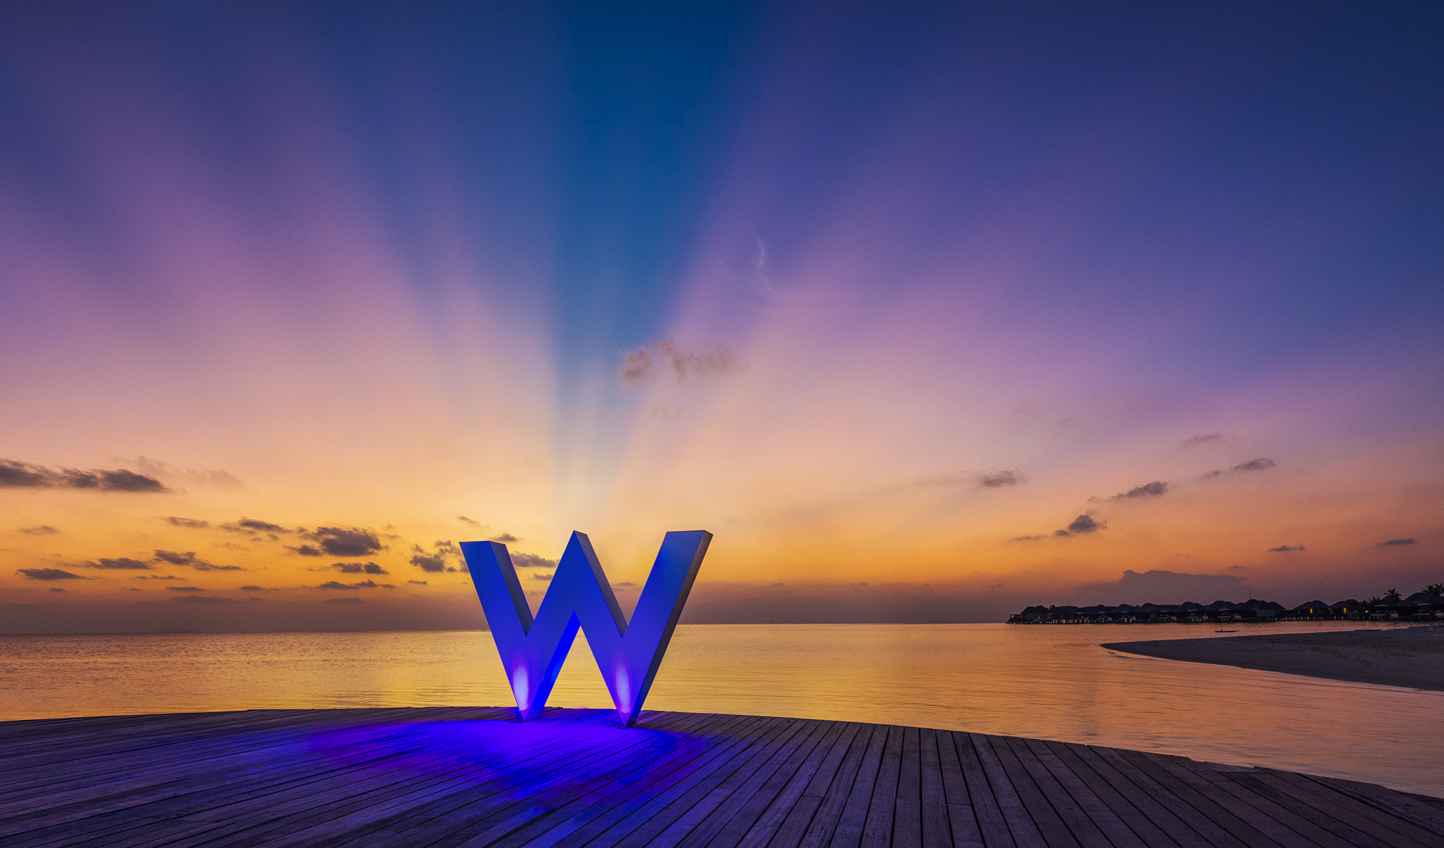 For a luxurious break in the Maldives, head to W Maldives